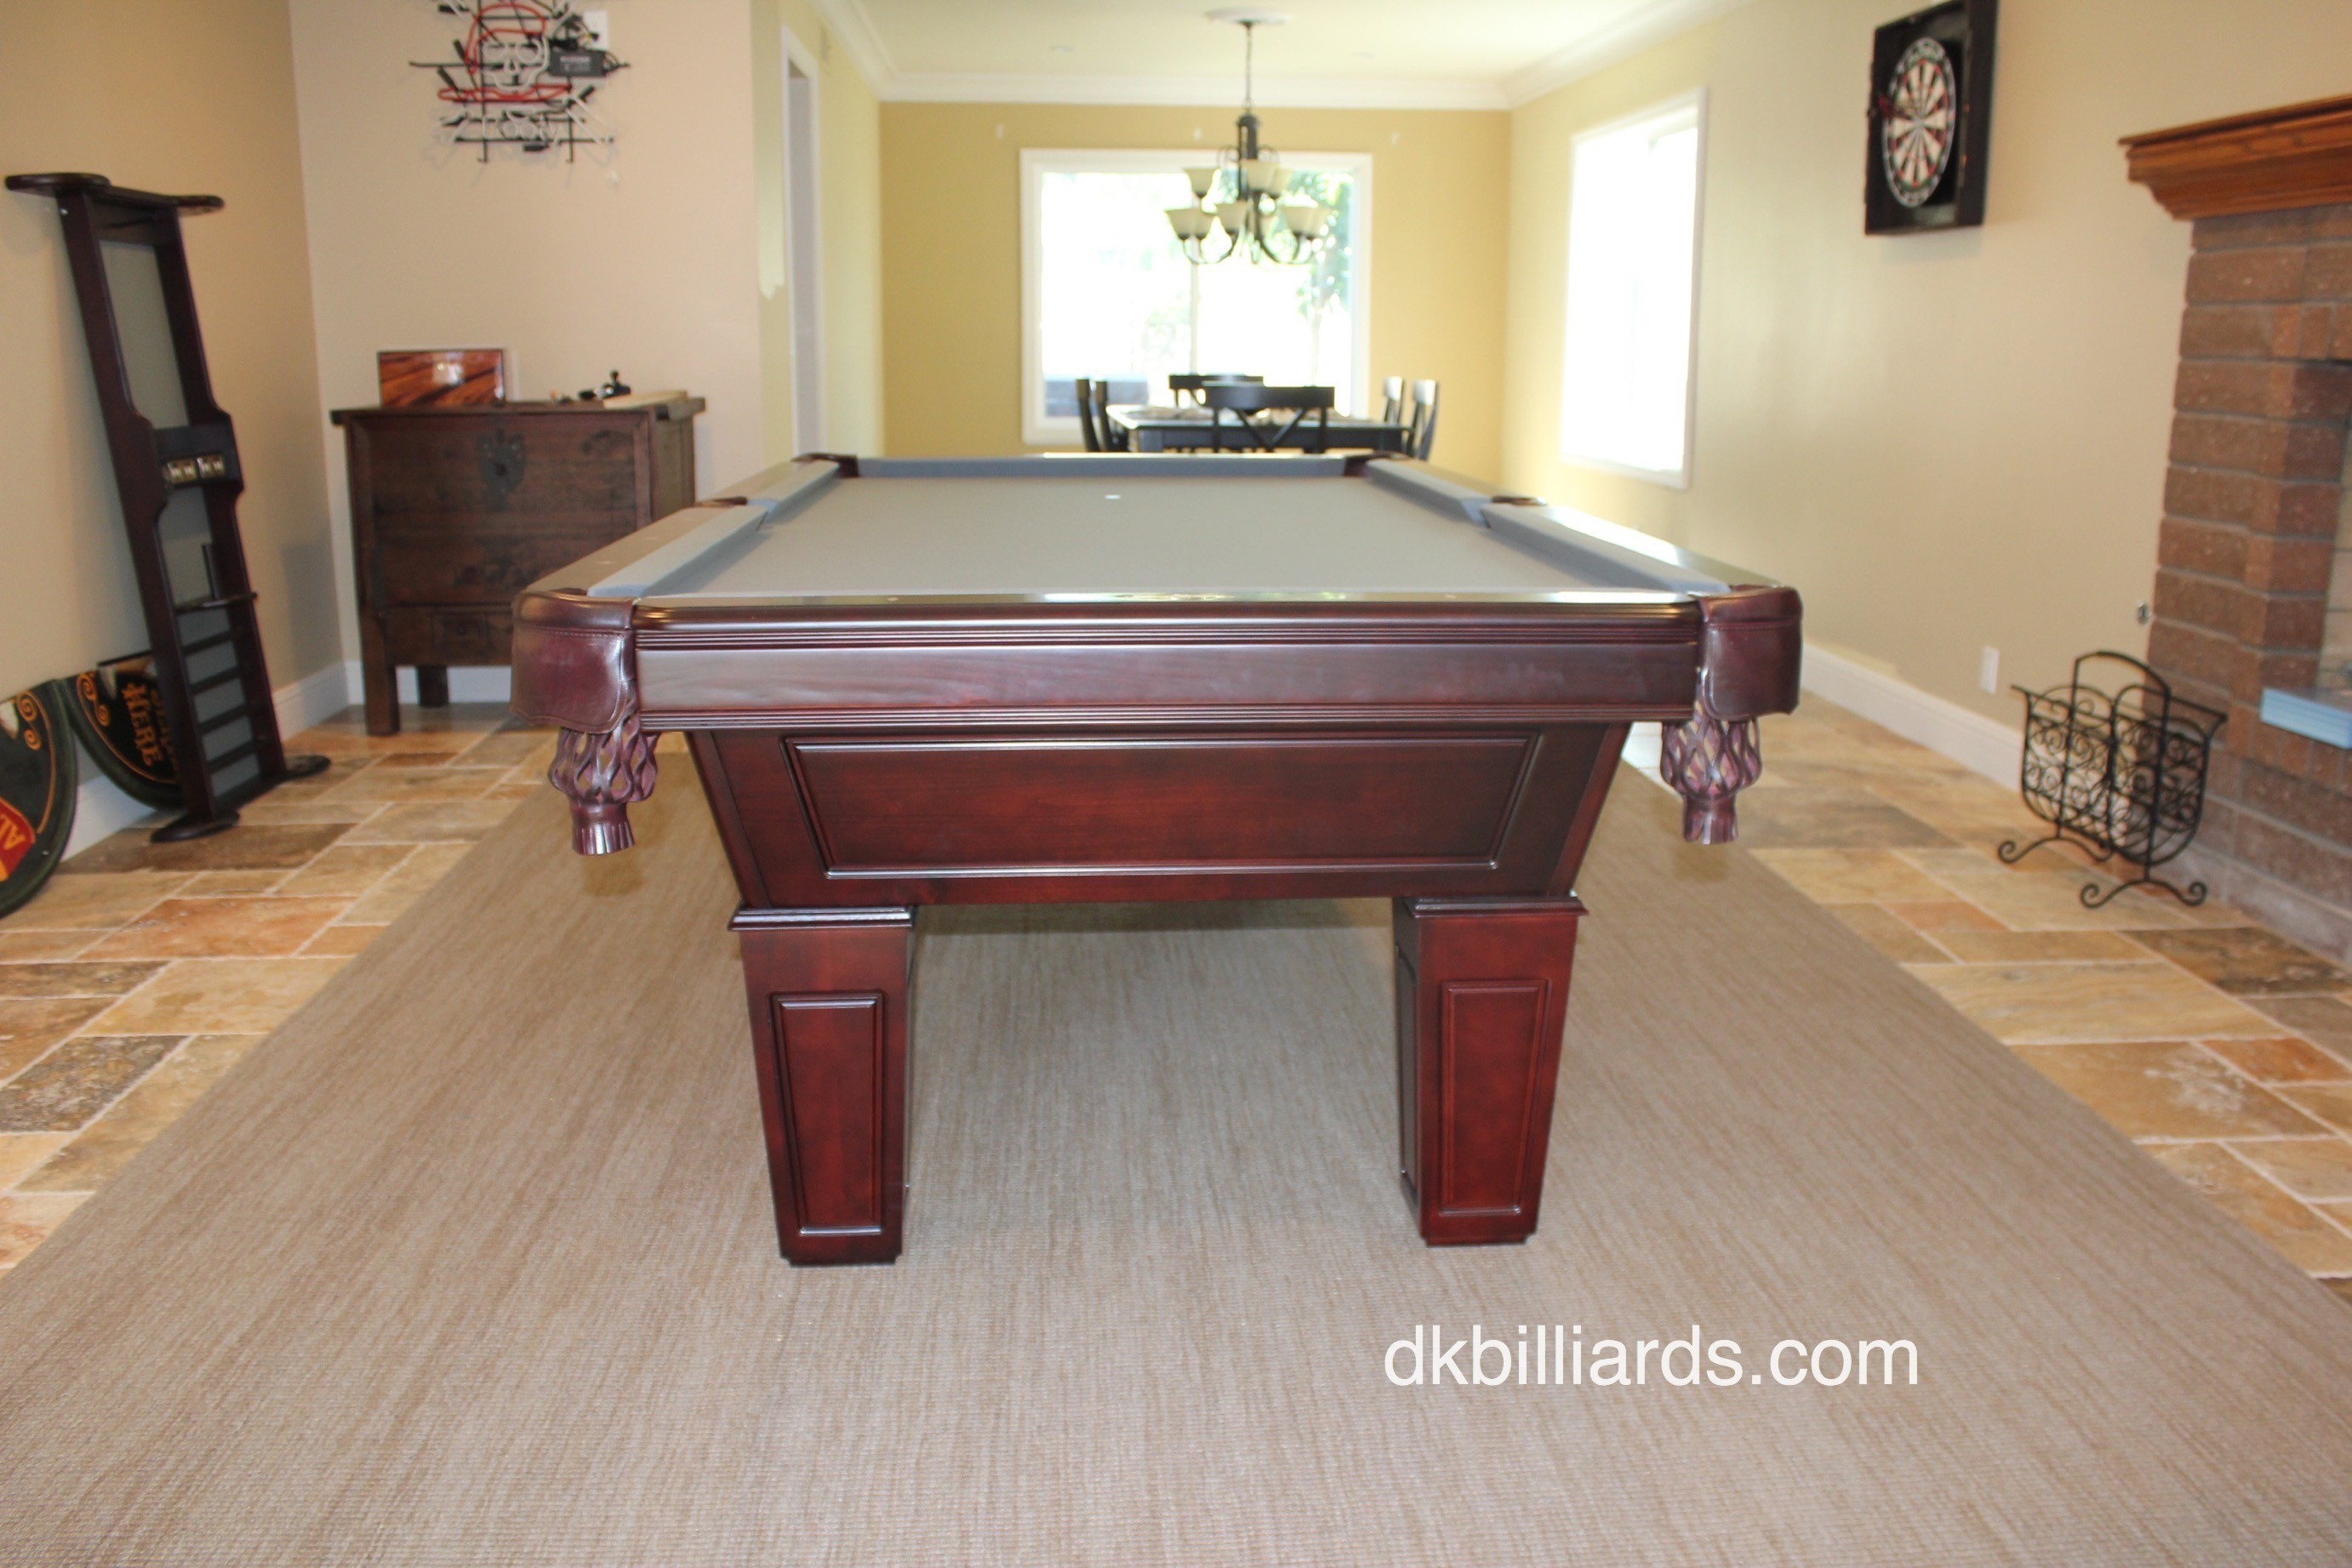 Our Customer Chose To Use A Low Pile Rug Beneath The Pool Table To Create A  Visual Anchor And Dampen The Noise Of Ball To Ball Contact. Placing A Rug  Under ...